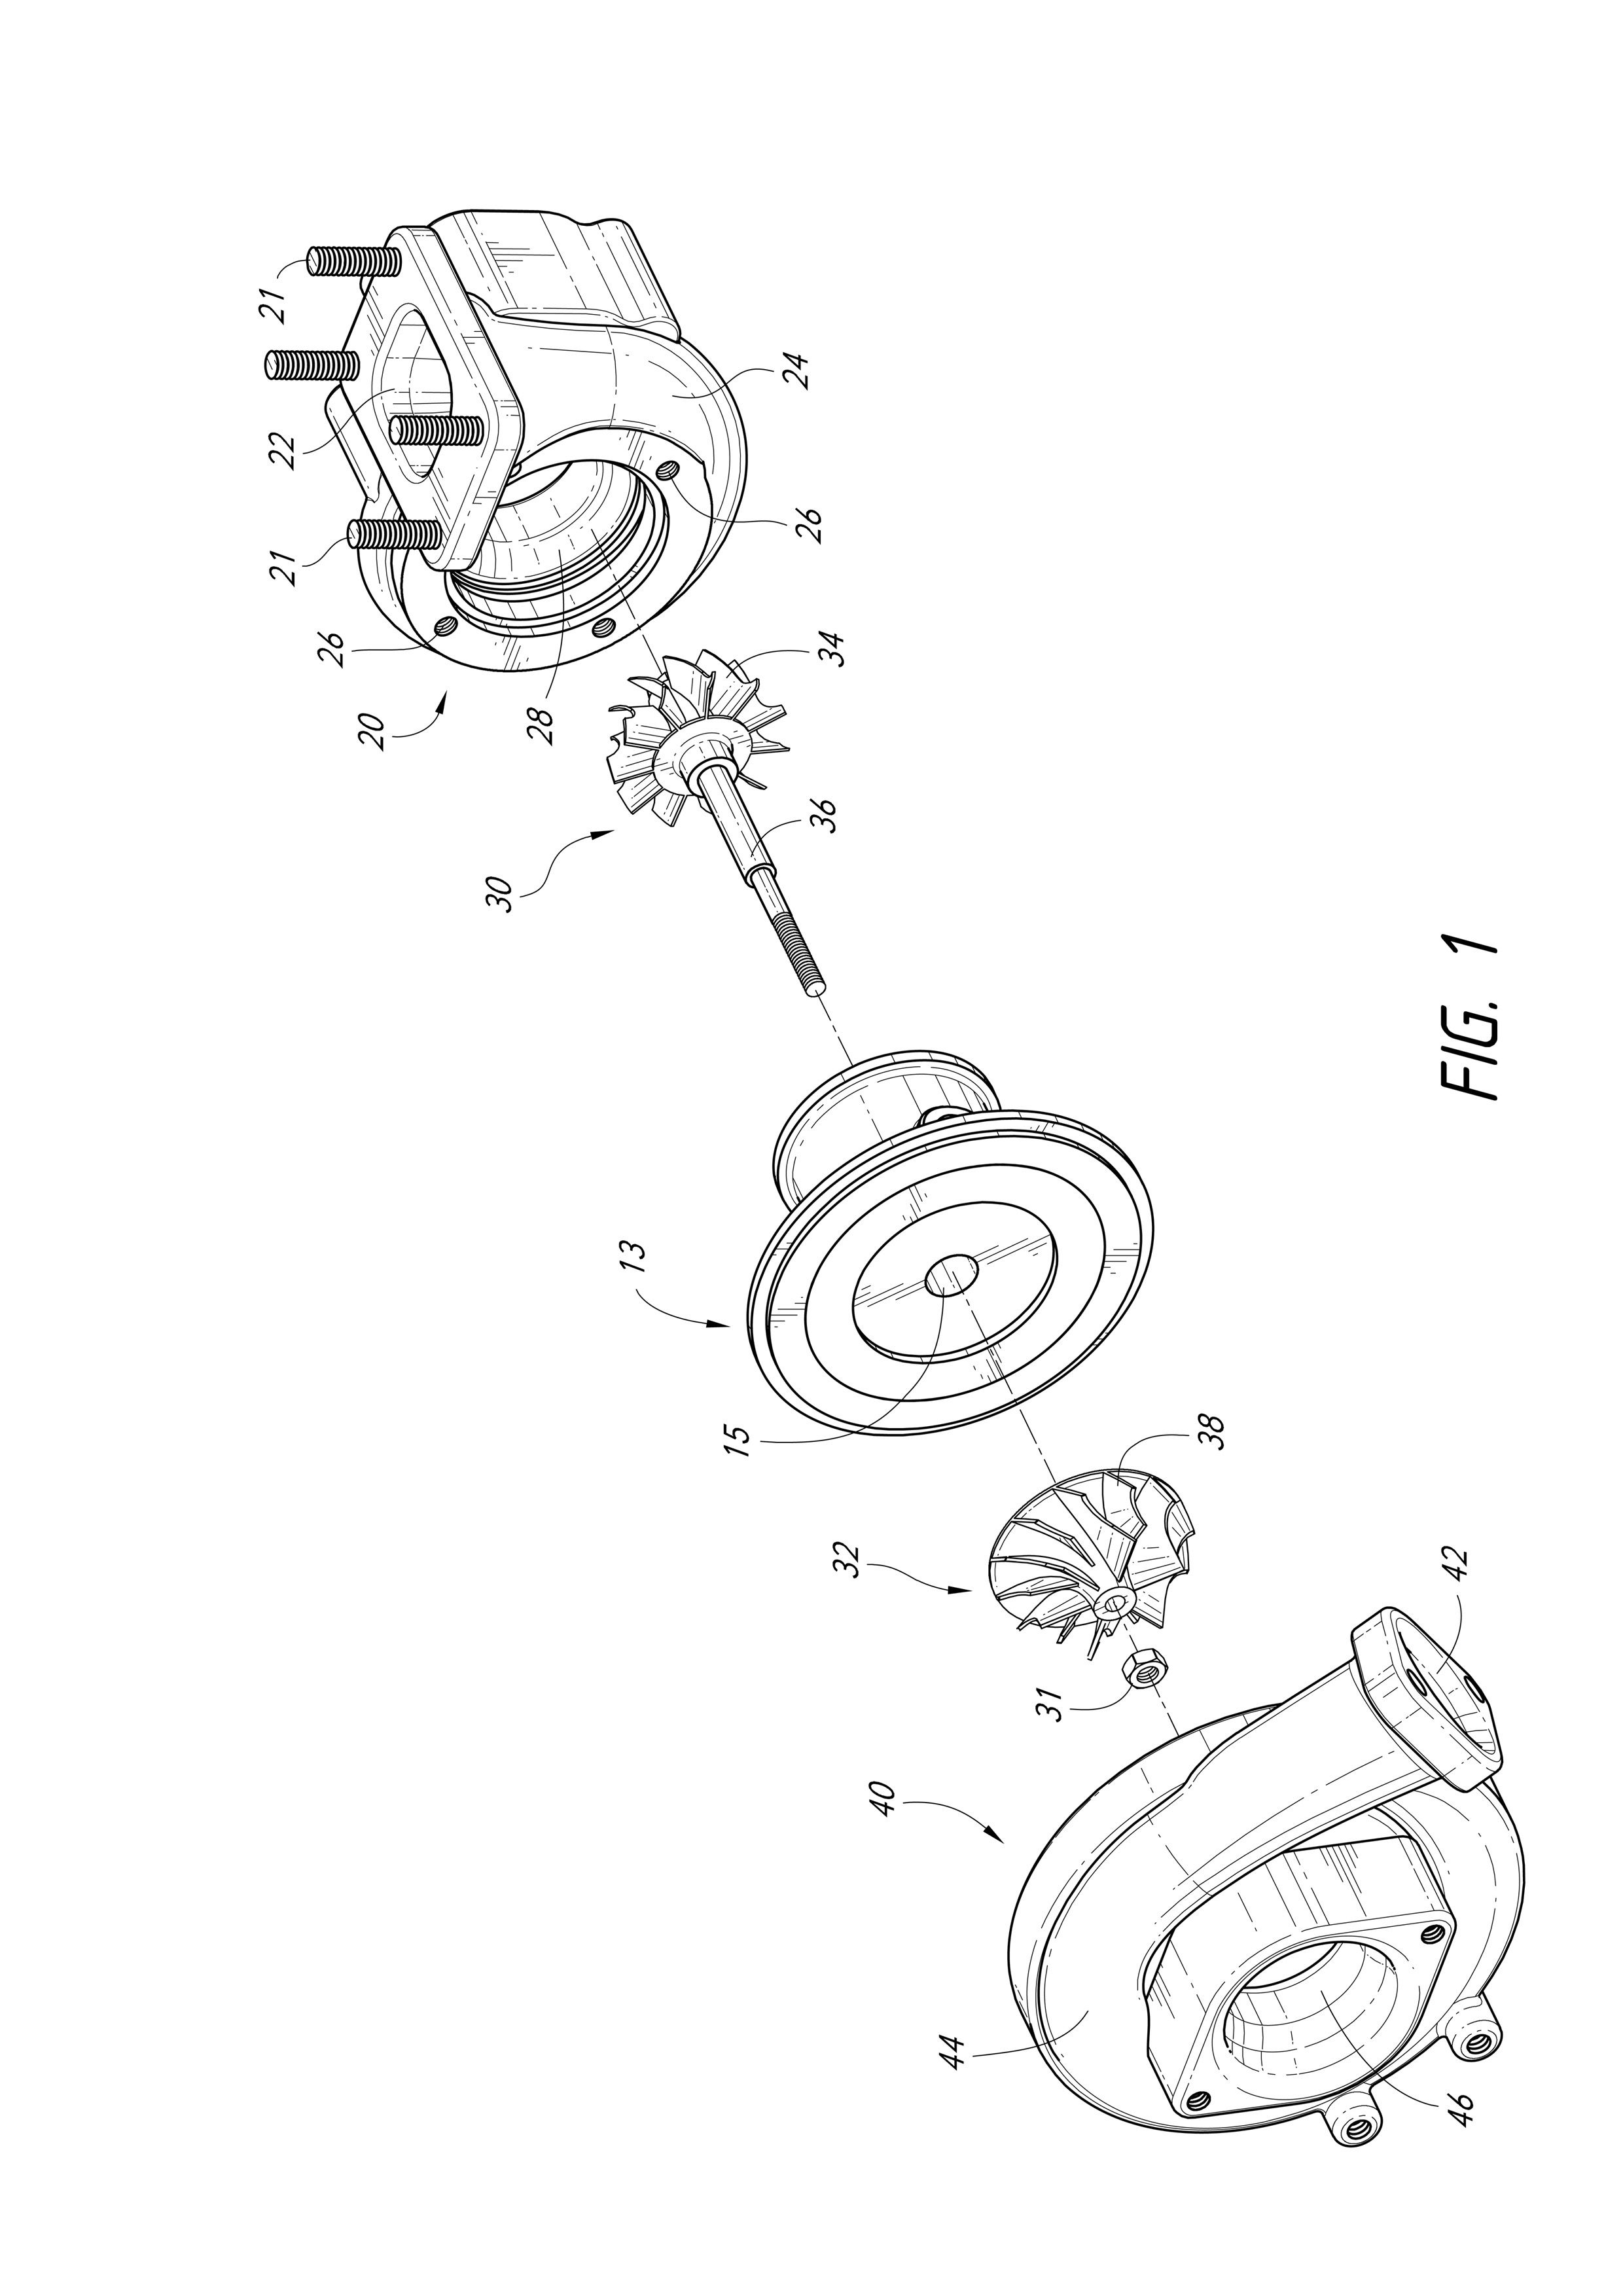 hight resolution of exploded view of a turbo charger combustion engine exploded view drag cars drag